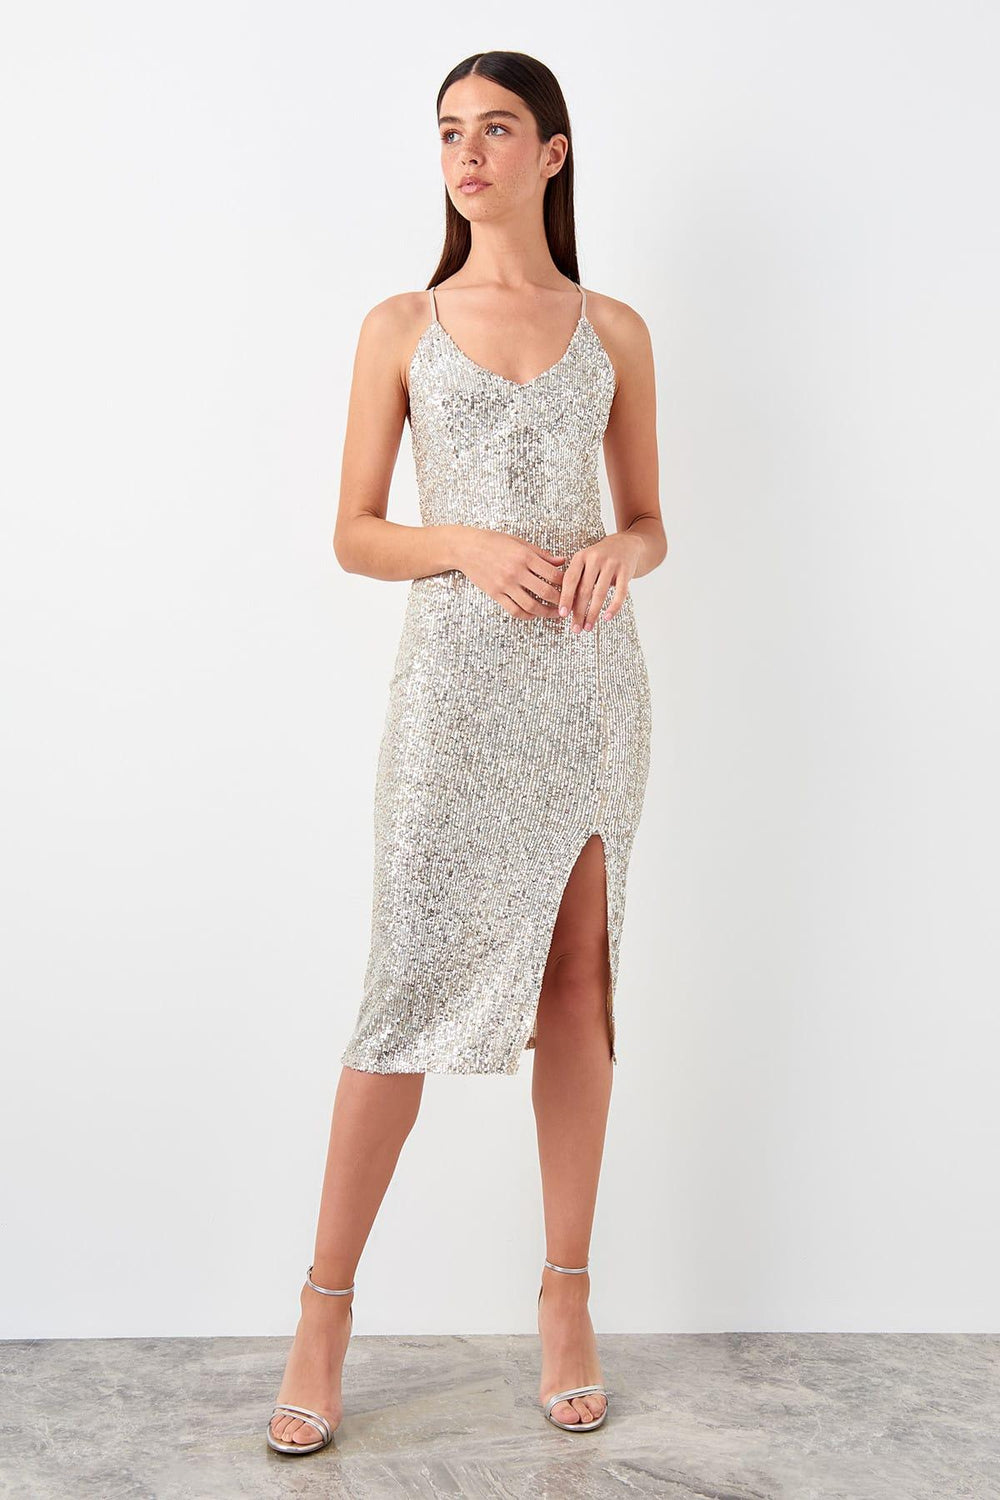 Silver Ridge Detailed Sequin Dress - Top Maxy